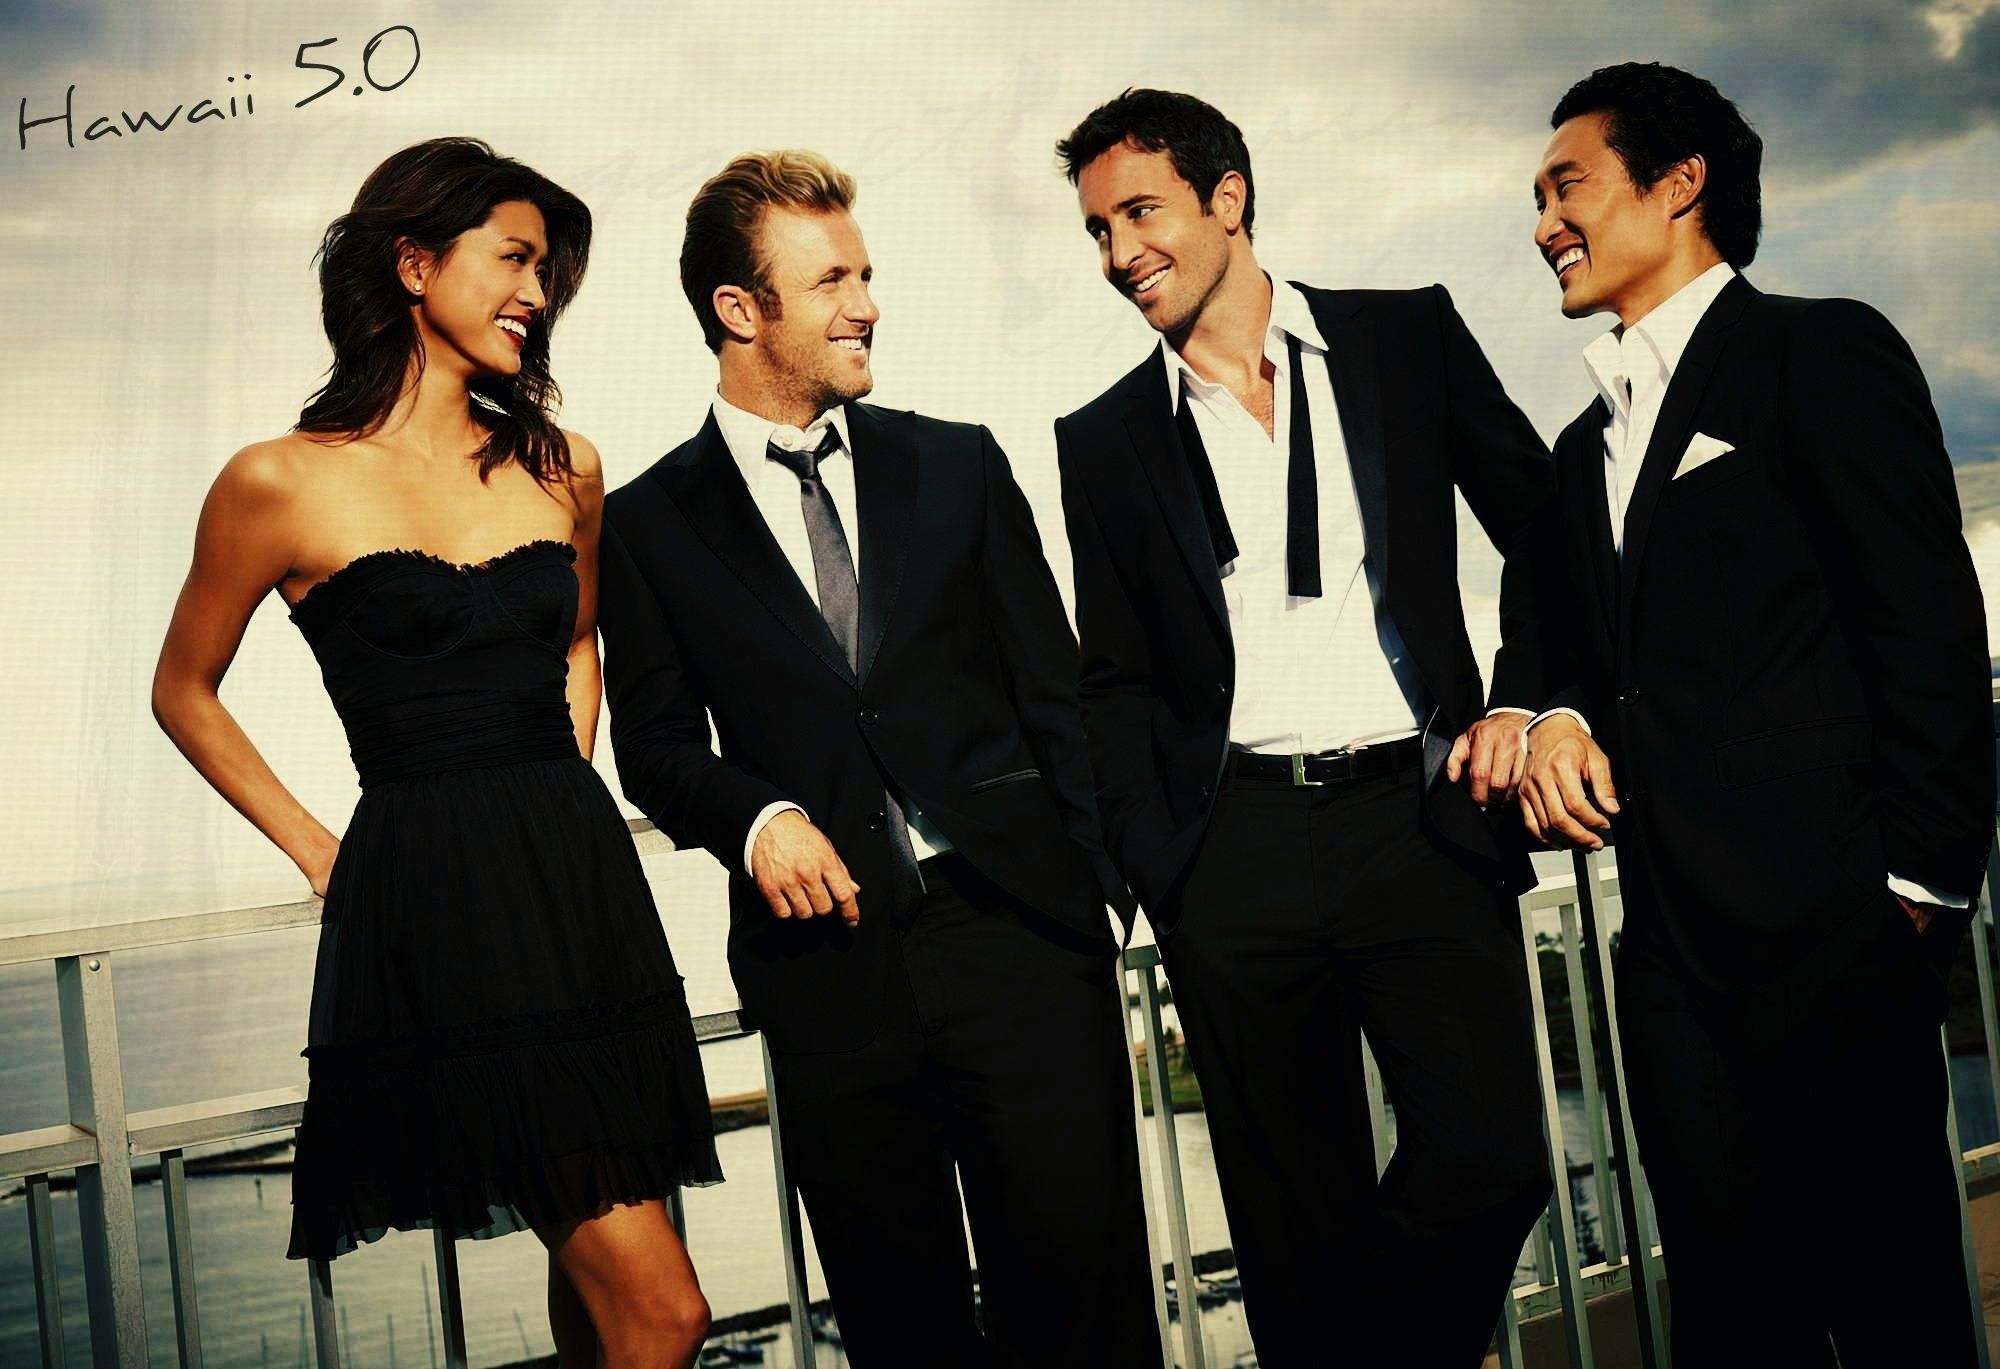 hawaii 5 0 hawaii five o photo 20453504 fanpop